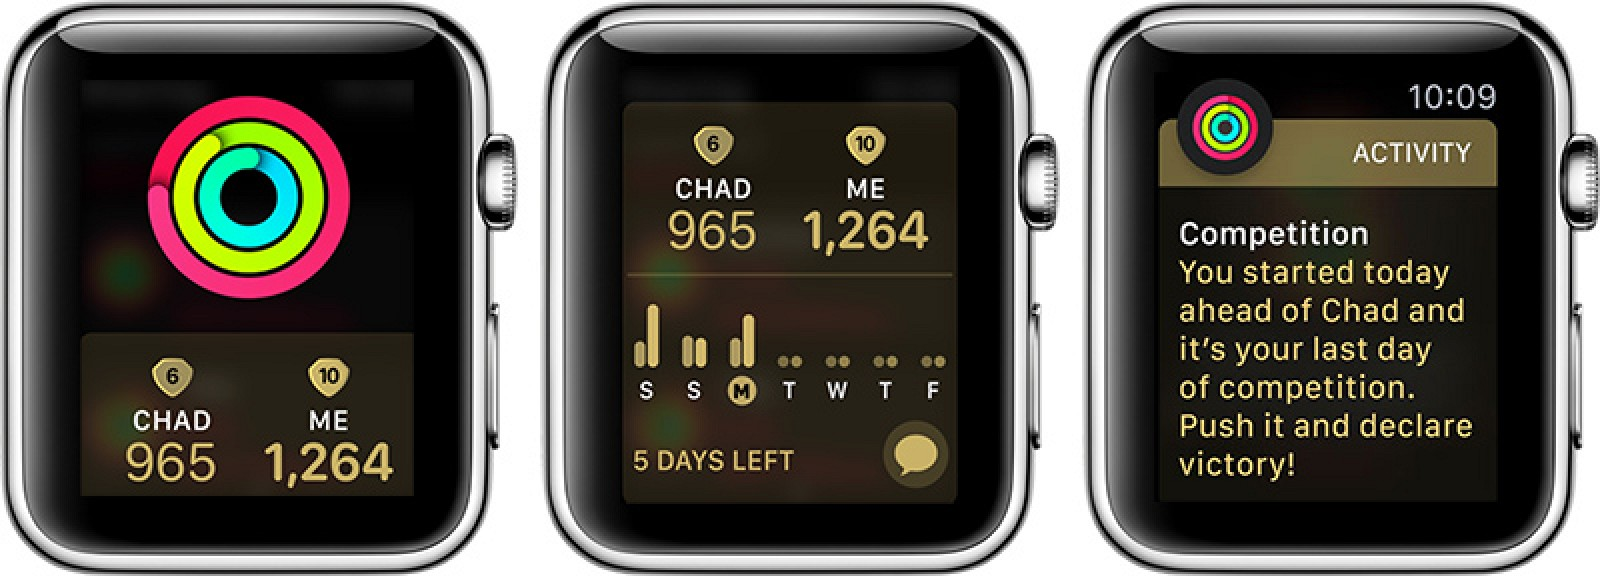 9 Apple Watch Benefits You Might Not Have Considered